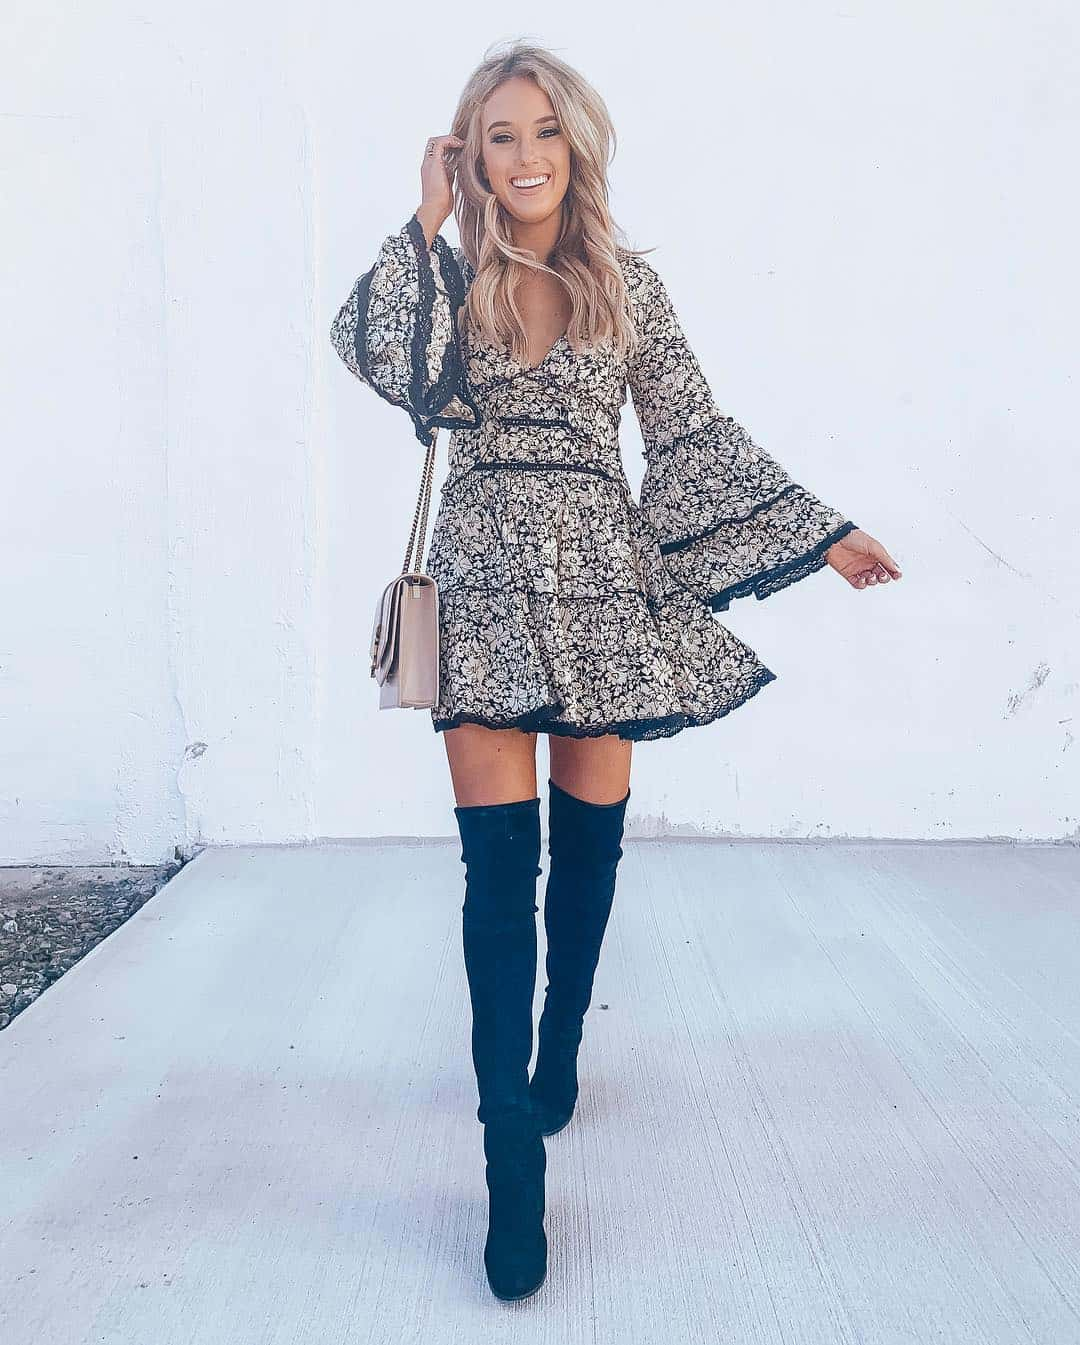 Flowy Dress and Over the Knee Boots